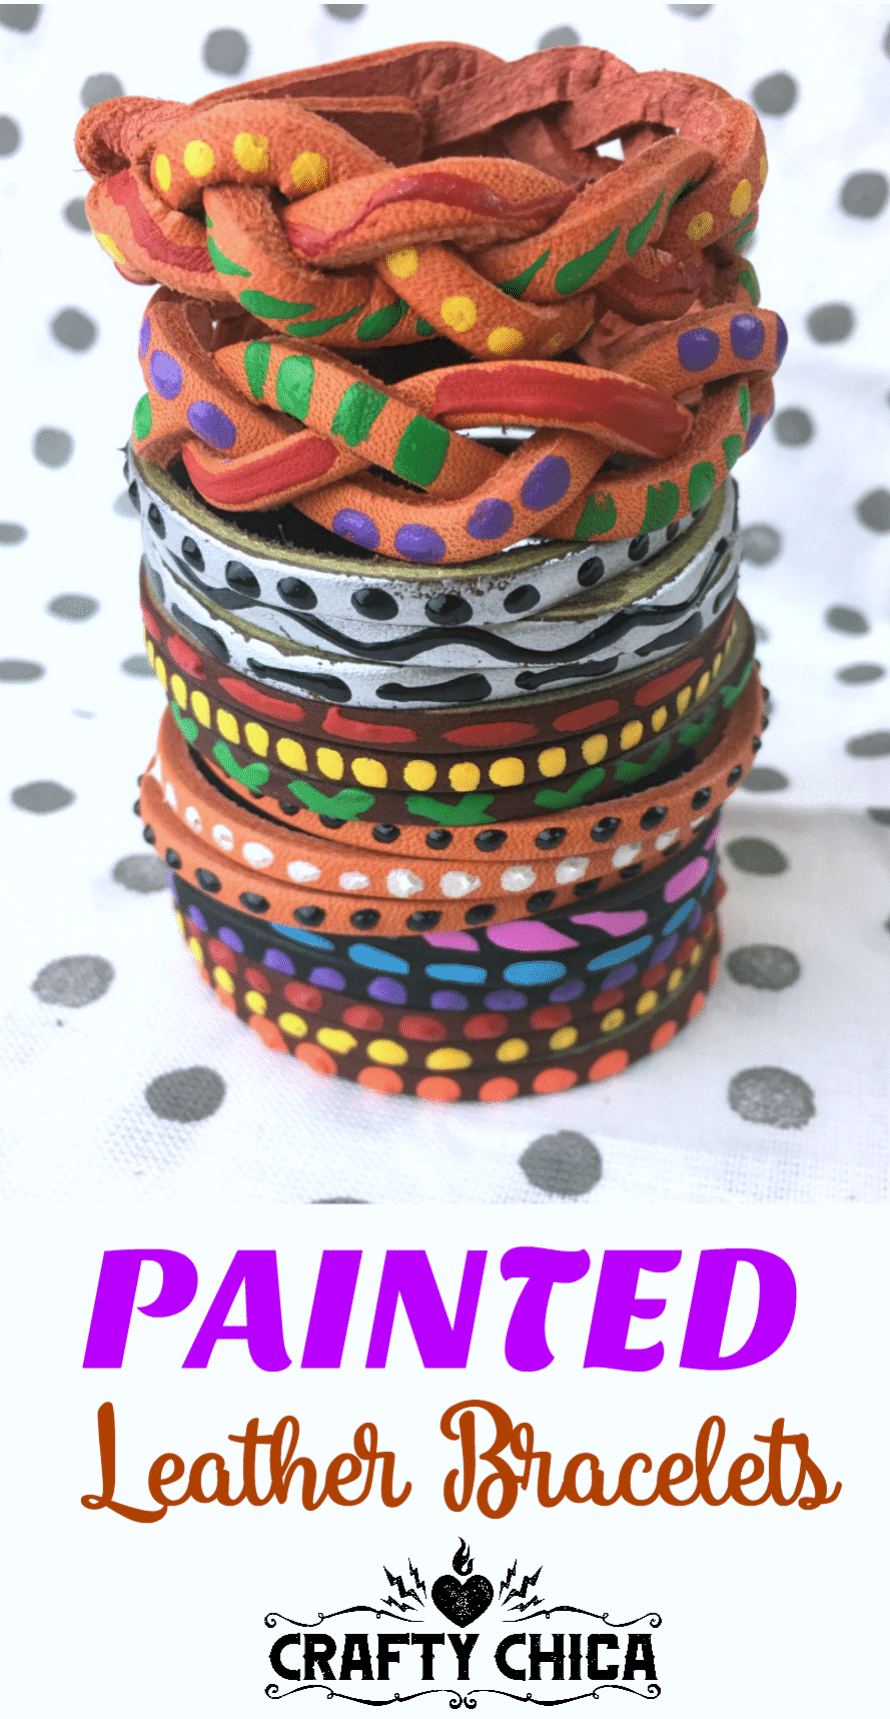 Painted leather bracelets by CraftyChica.com